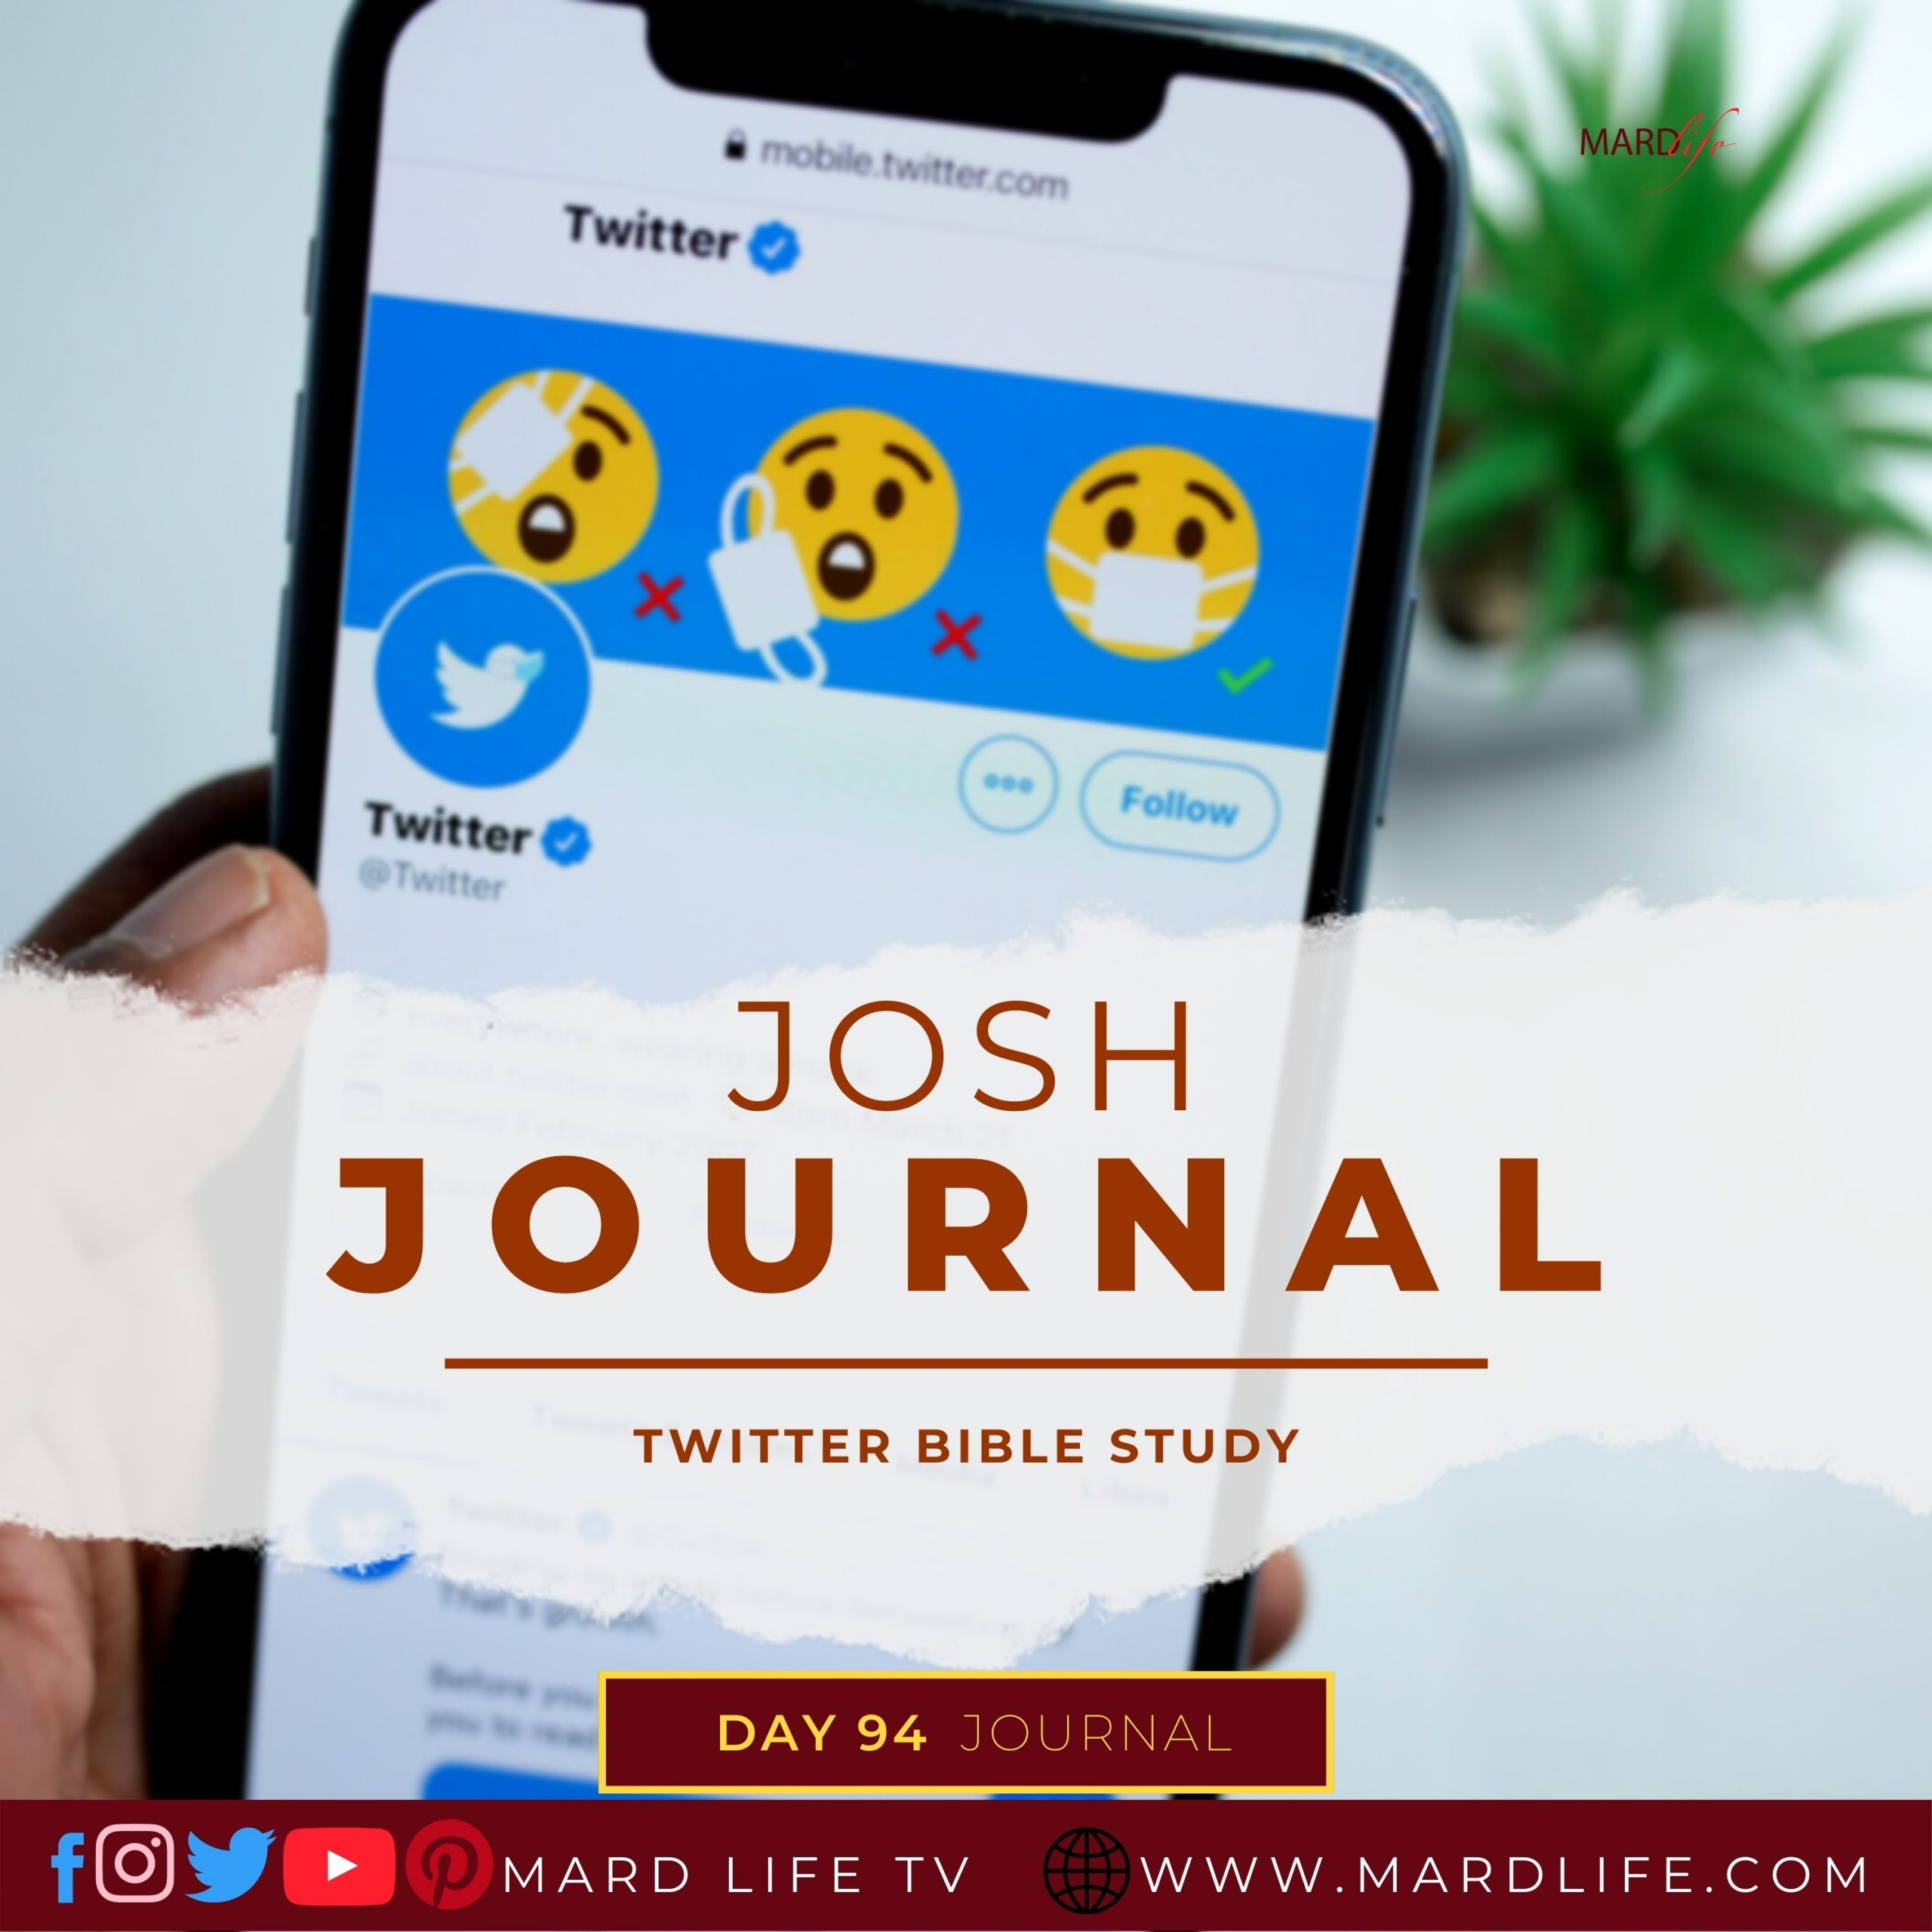 Twitter, Bible, Bible Study, Garden Of Gethsemane, Naked Disciple, Mark 14, Jesus Arrested, Naked Apostle, Nakedness In The Bible, Paul And Silas,